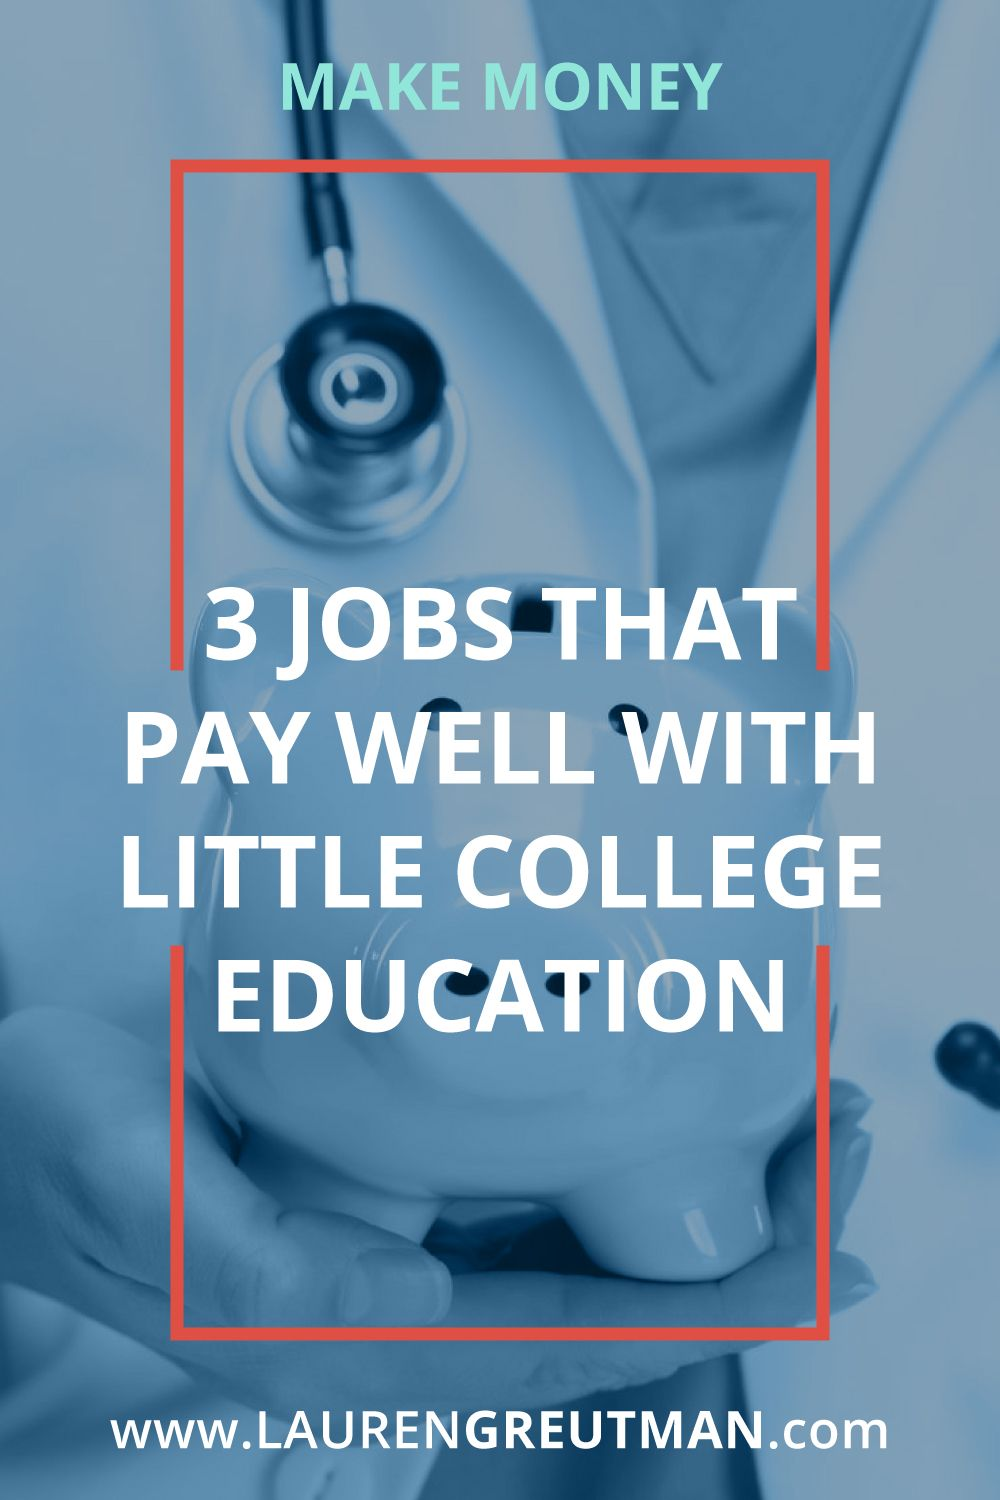 3 Jobs that Pay Well With Little College Education